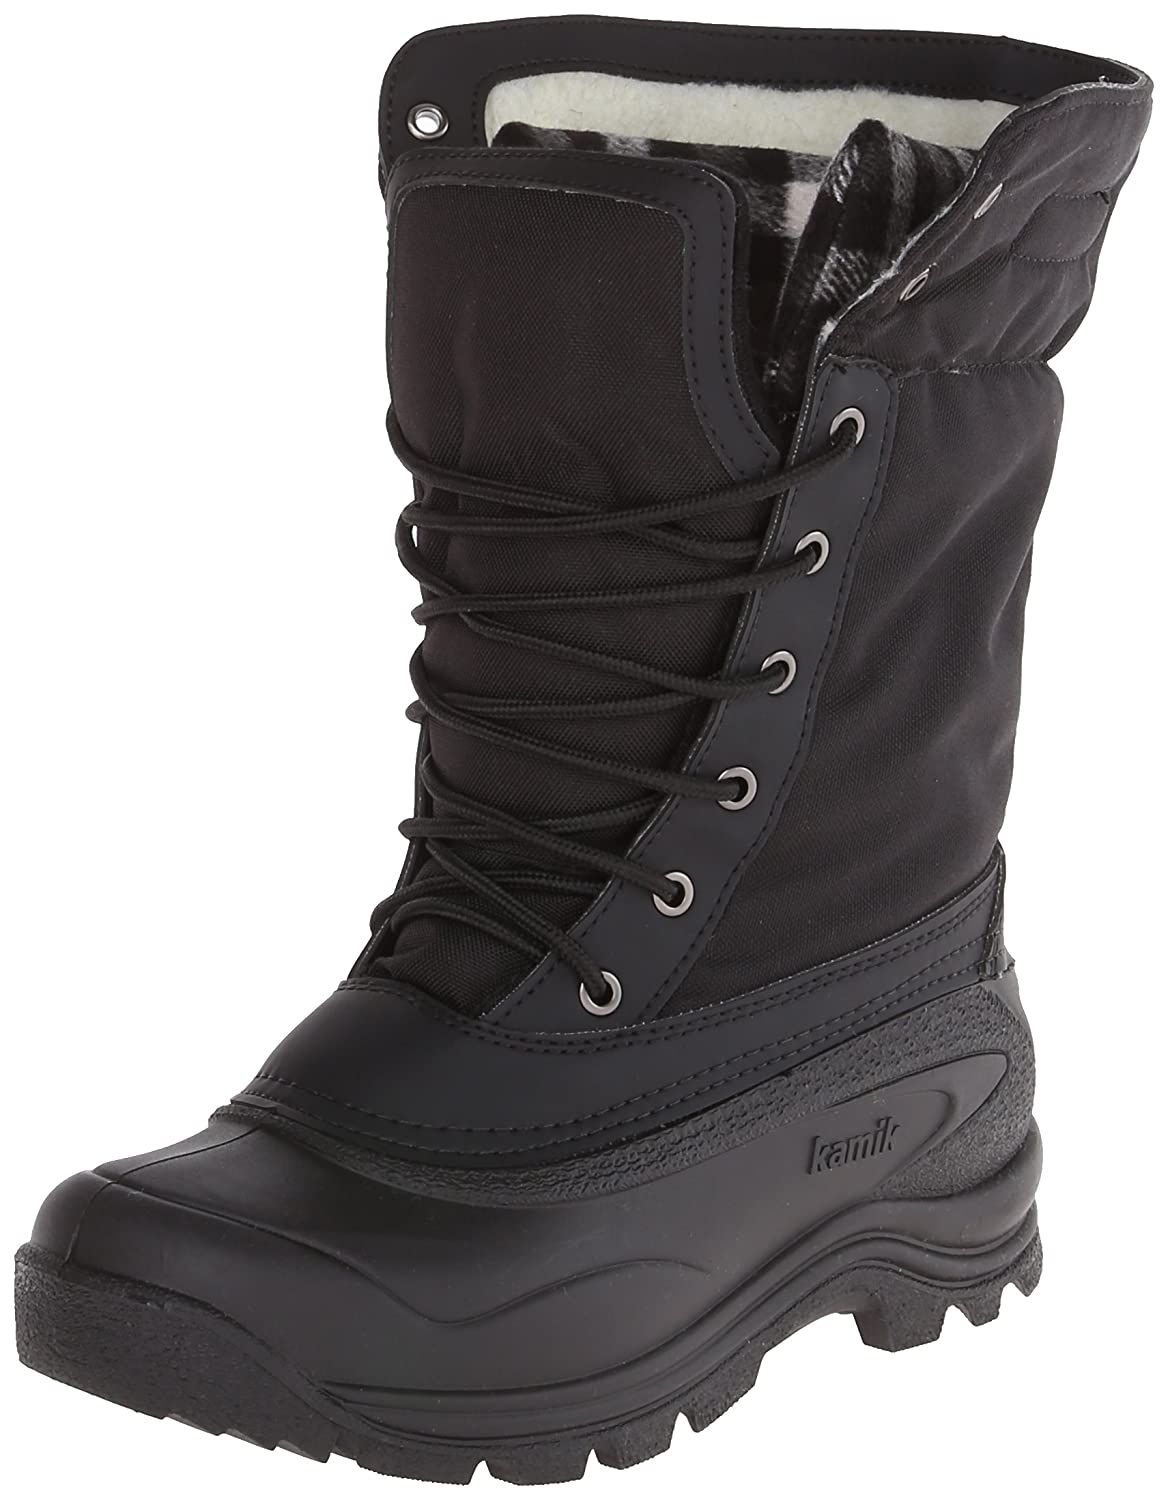 Kamik Women's B(M) Sugarloaf Boot B00HSYE7Y6 9 B(M) Women's US|Black 6c960d